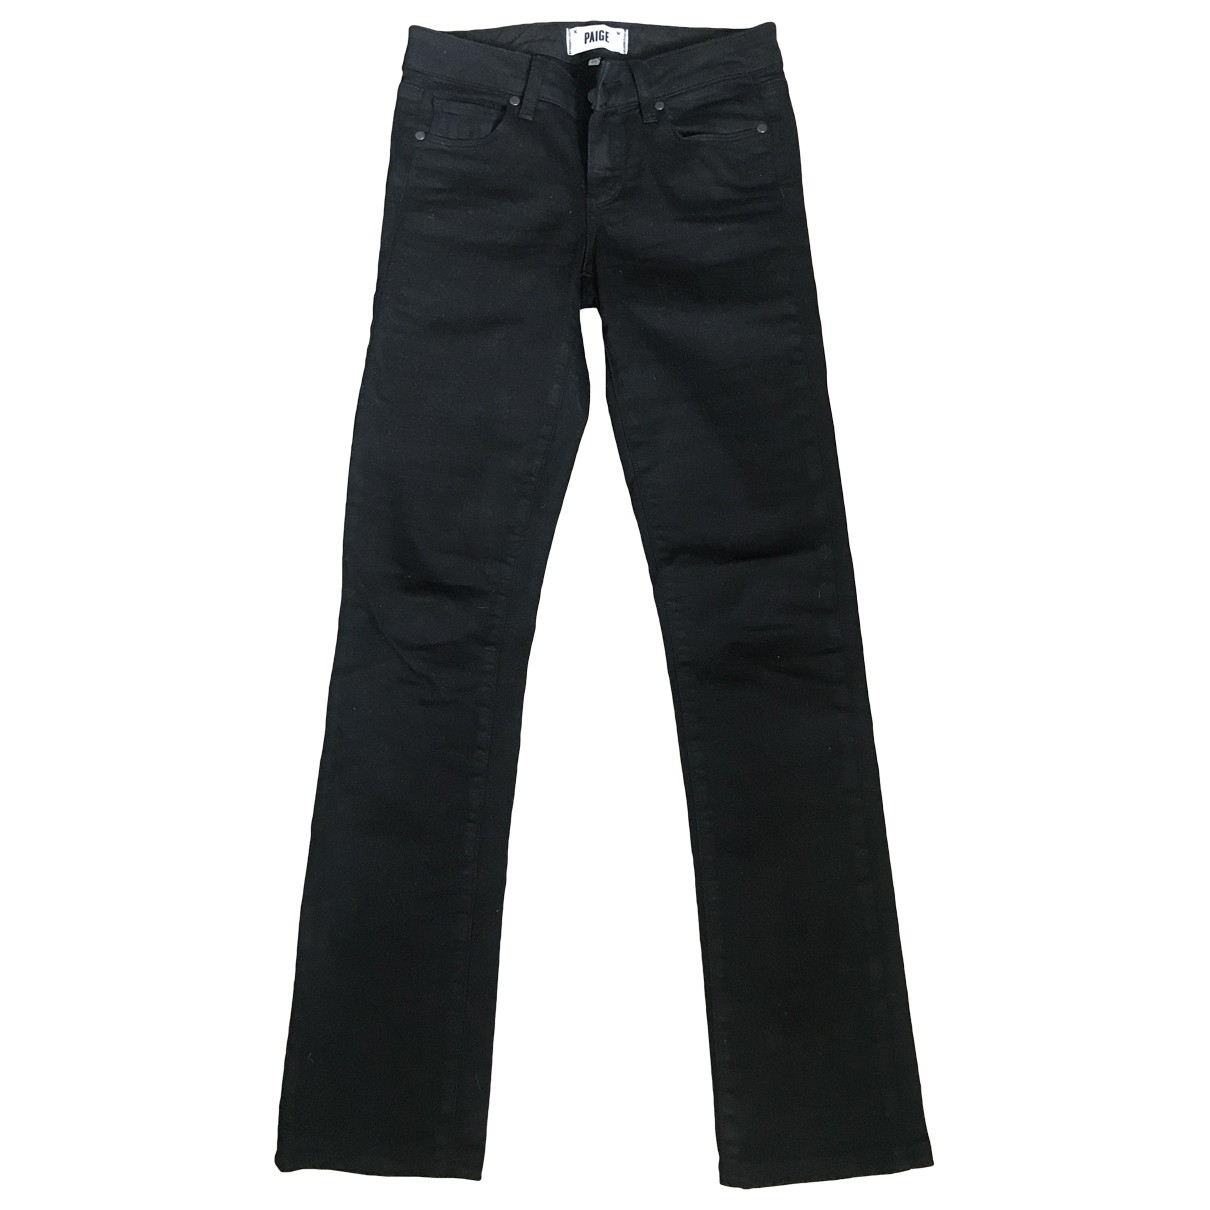 Paige Jeans \N Black Cotton - elasthane Jeans for Women 25 US